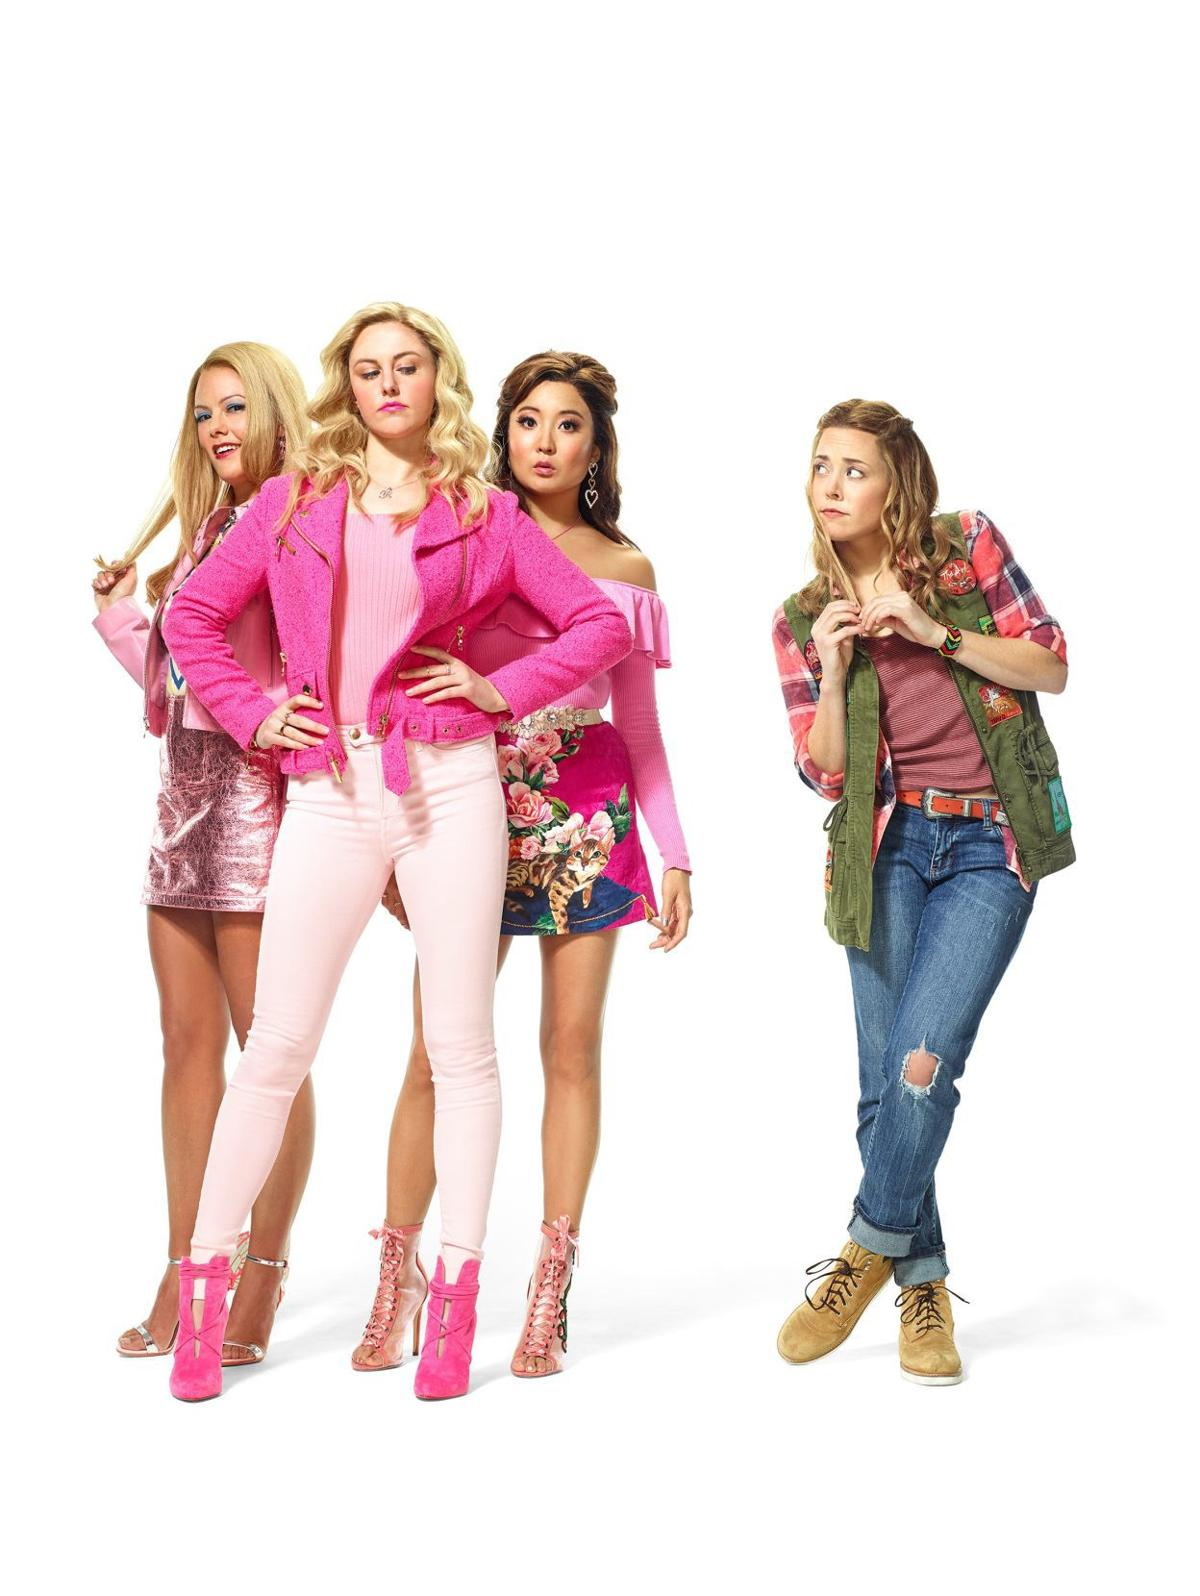 Life As A Plastic Is Fantastic For Broadway Mean Girls Star Taylor Louderman Arts And Theater Stltoday Com Ashley park, gretchen weiners the actor made her broadway debut in mamma mia! star taylor louderman